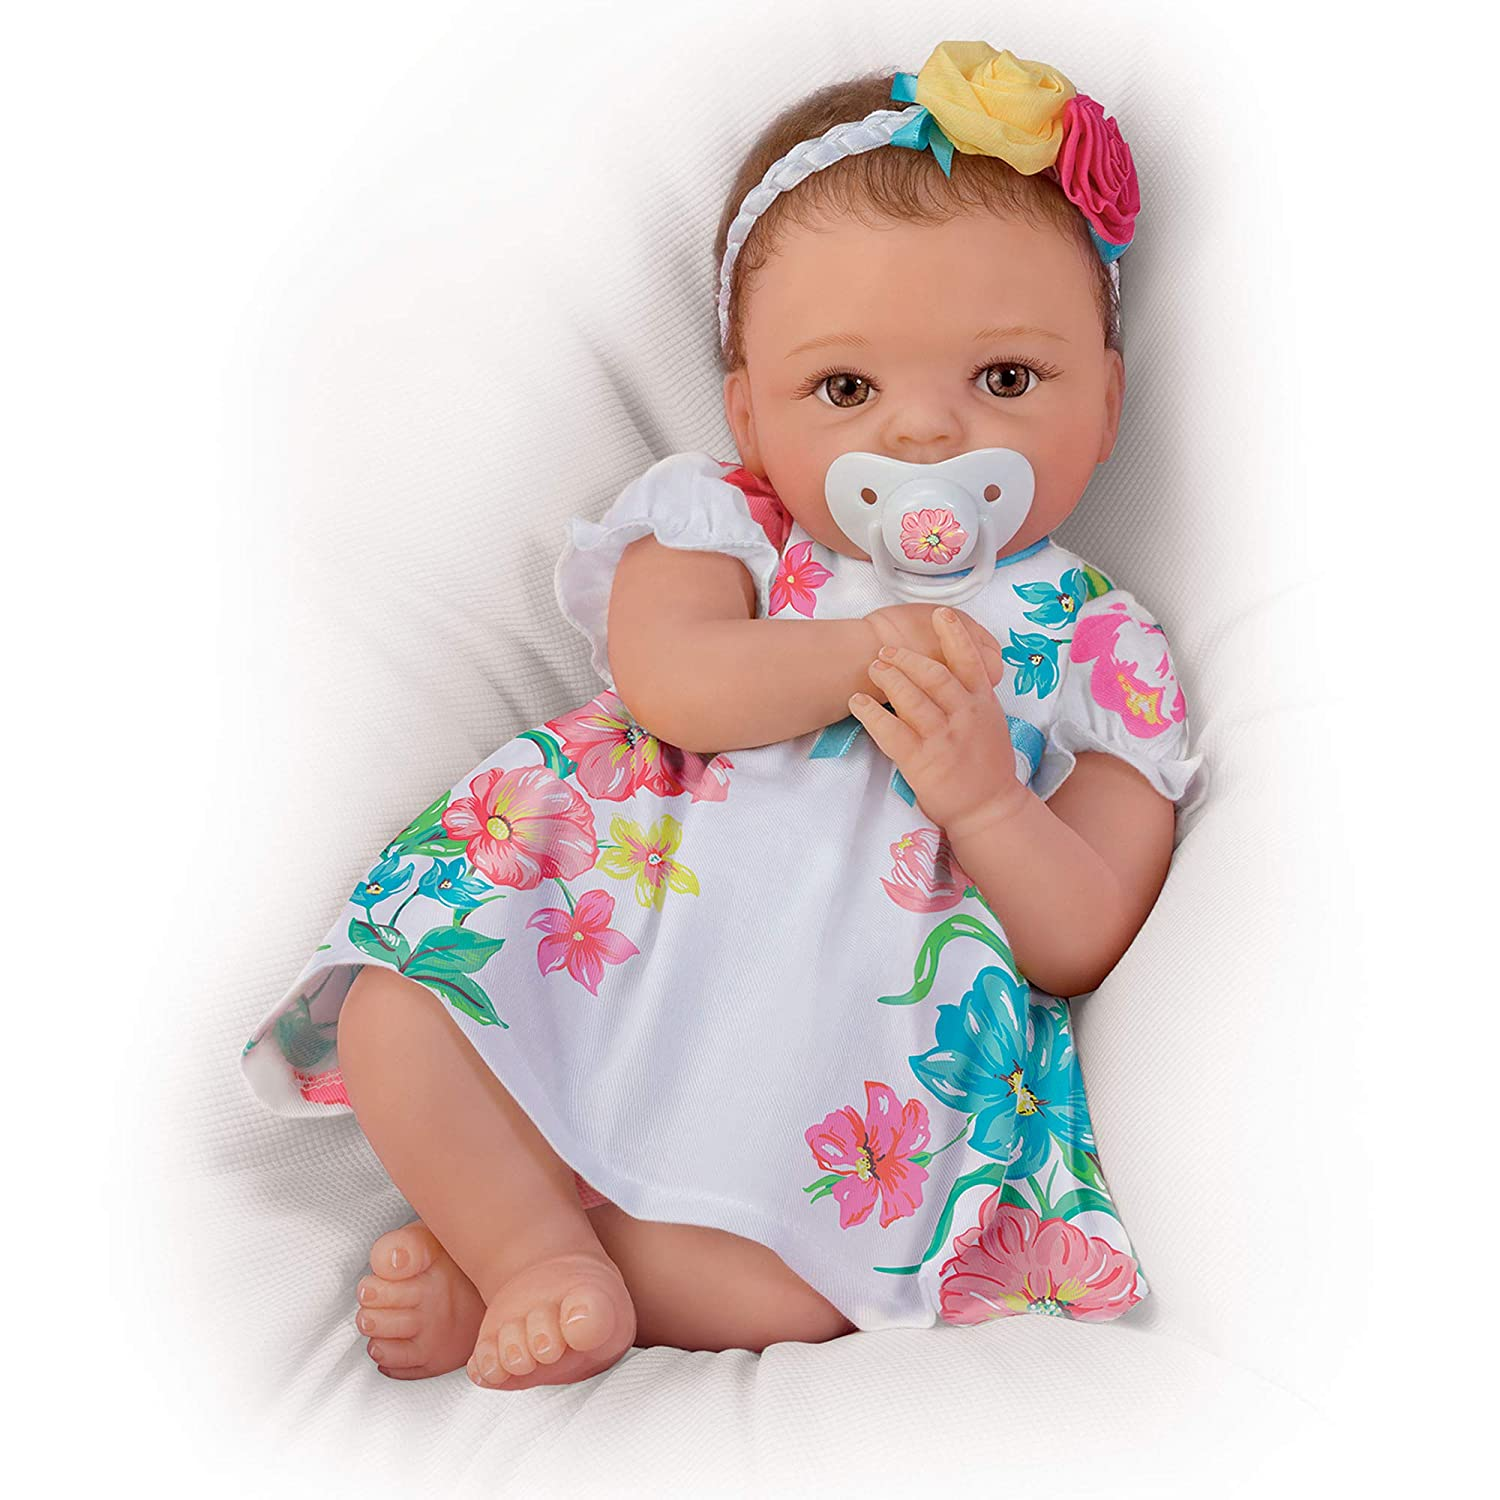 The Ashton - Drake Galleries 'Pretty And Petite Presley' So Truly Real® Baby Girl Doll – TrueTouch™ Silicone Newborn Reborn Lifelike Baby Girl Doll. Realistic Hand-rooted hair & Weighted For Realism